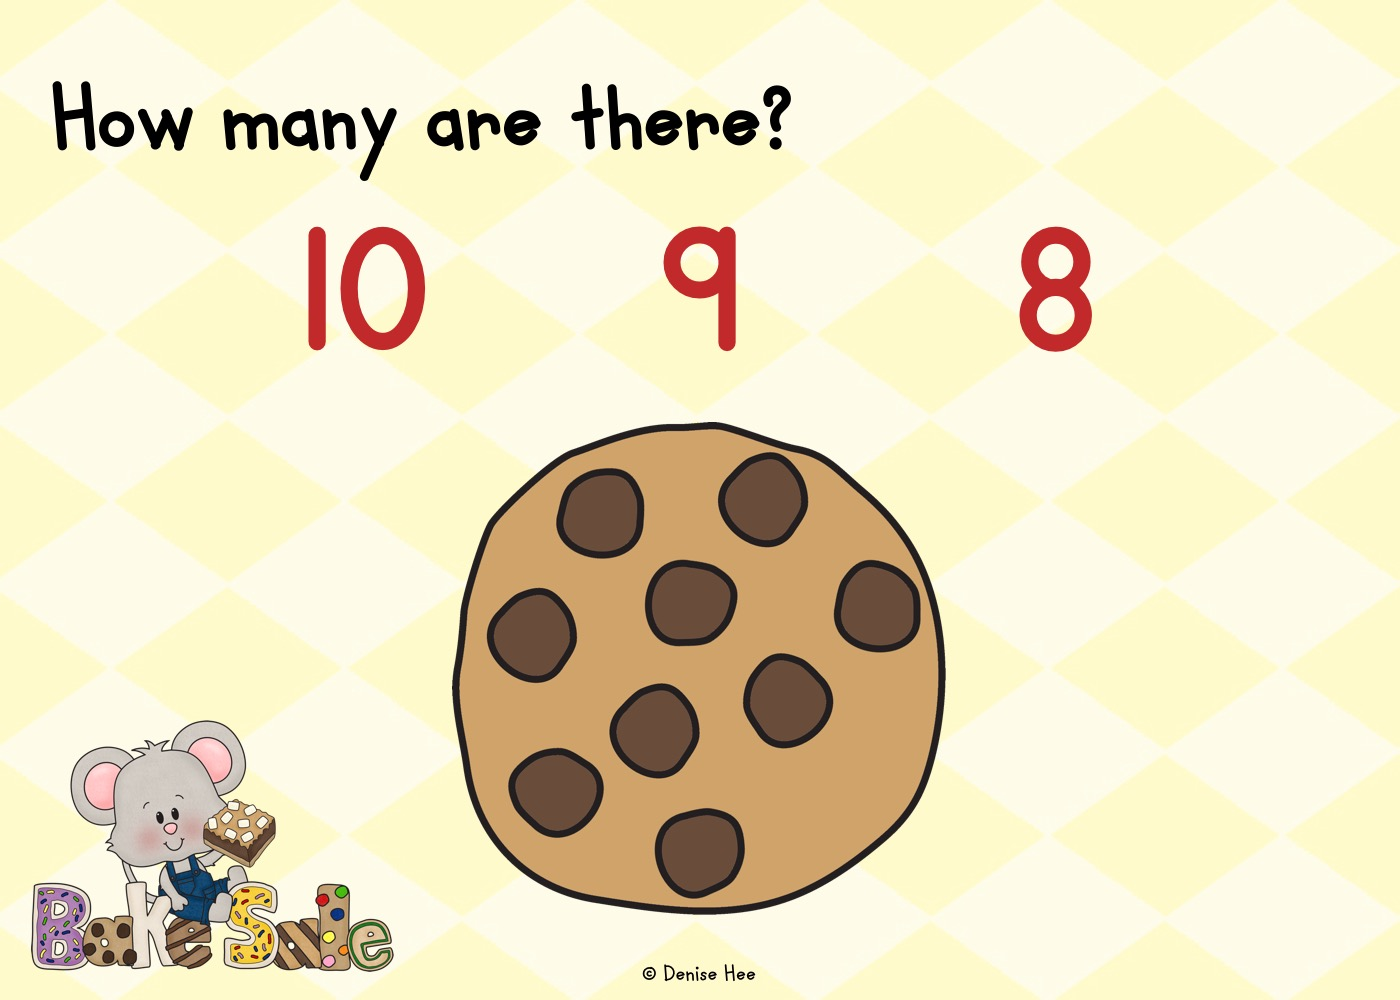 Count The Chocolate Chips 1-10 | Free Printable Worksheets For Kids | Kids will love this deliciously fun counting game! Count out the chocolate chips from 1-10 and clip a wooden peg on the correct answer. This printable game works on both math and fine motor skills.